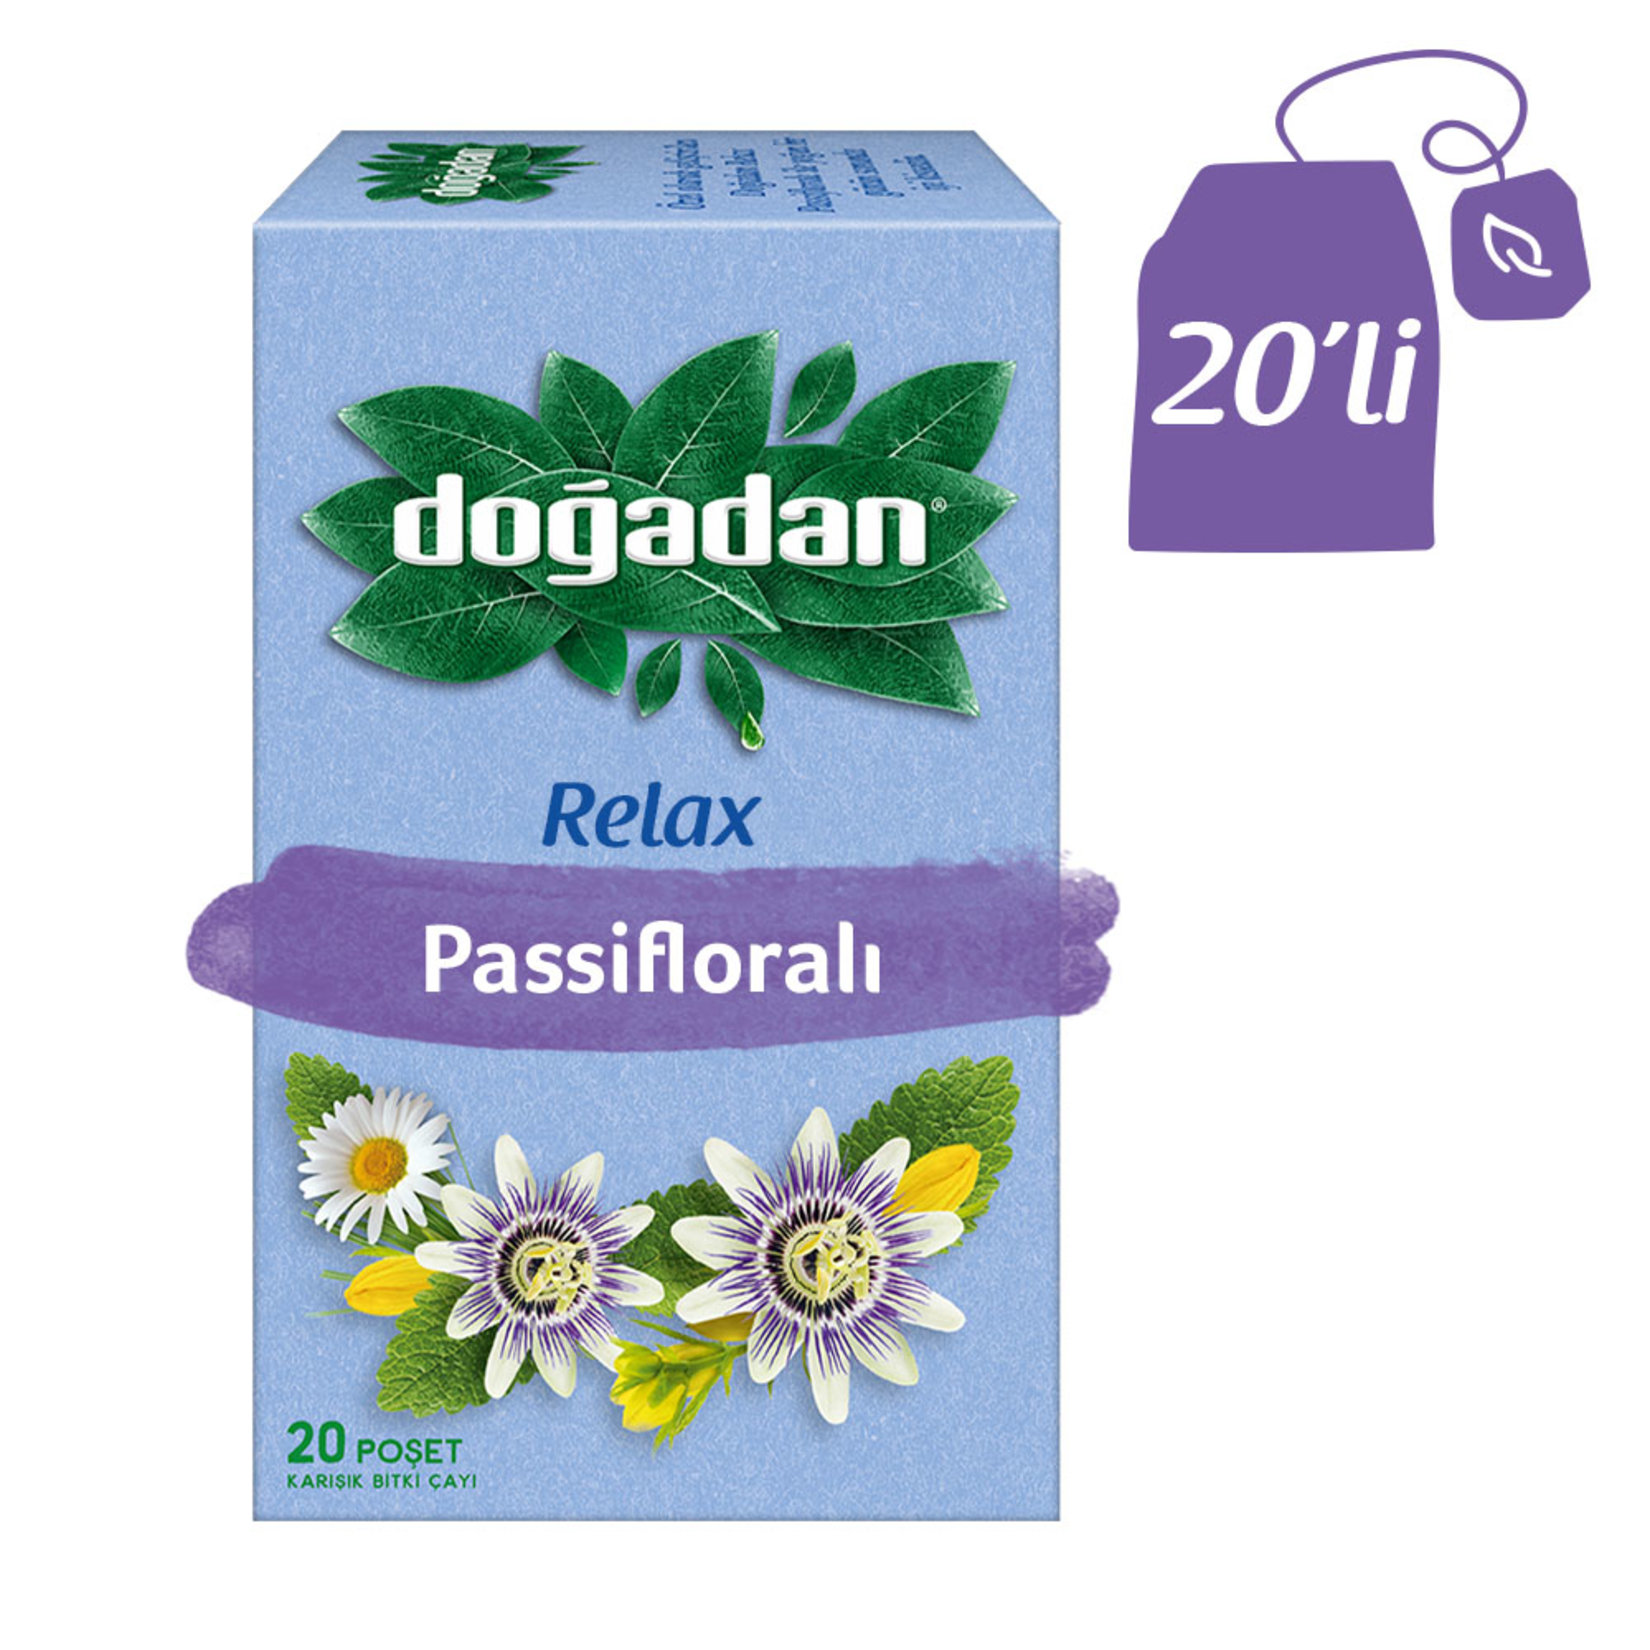 Doğadan - Relax Tea 20 Bags in Box